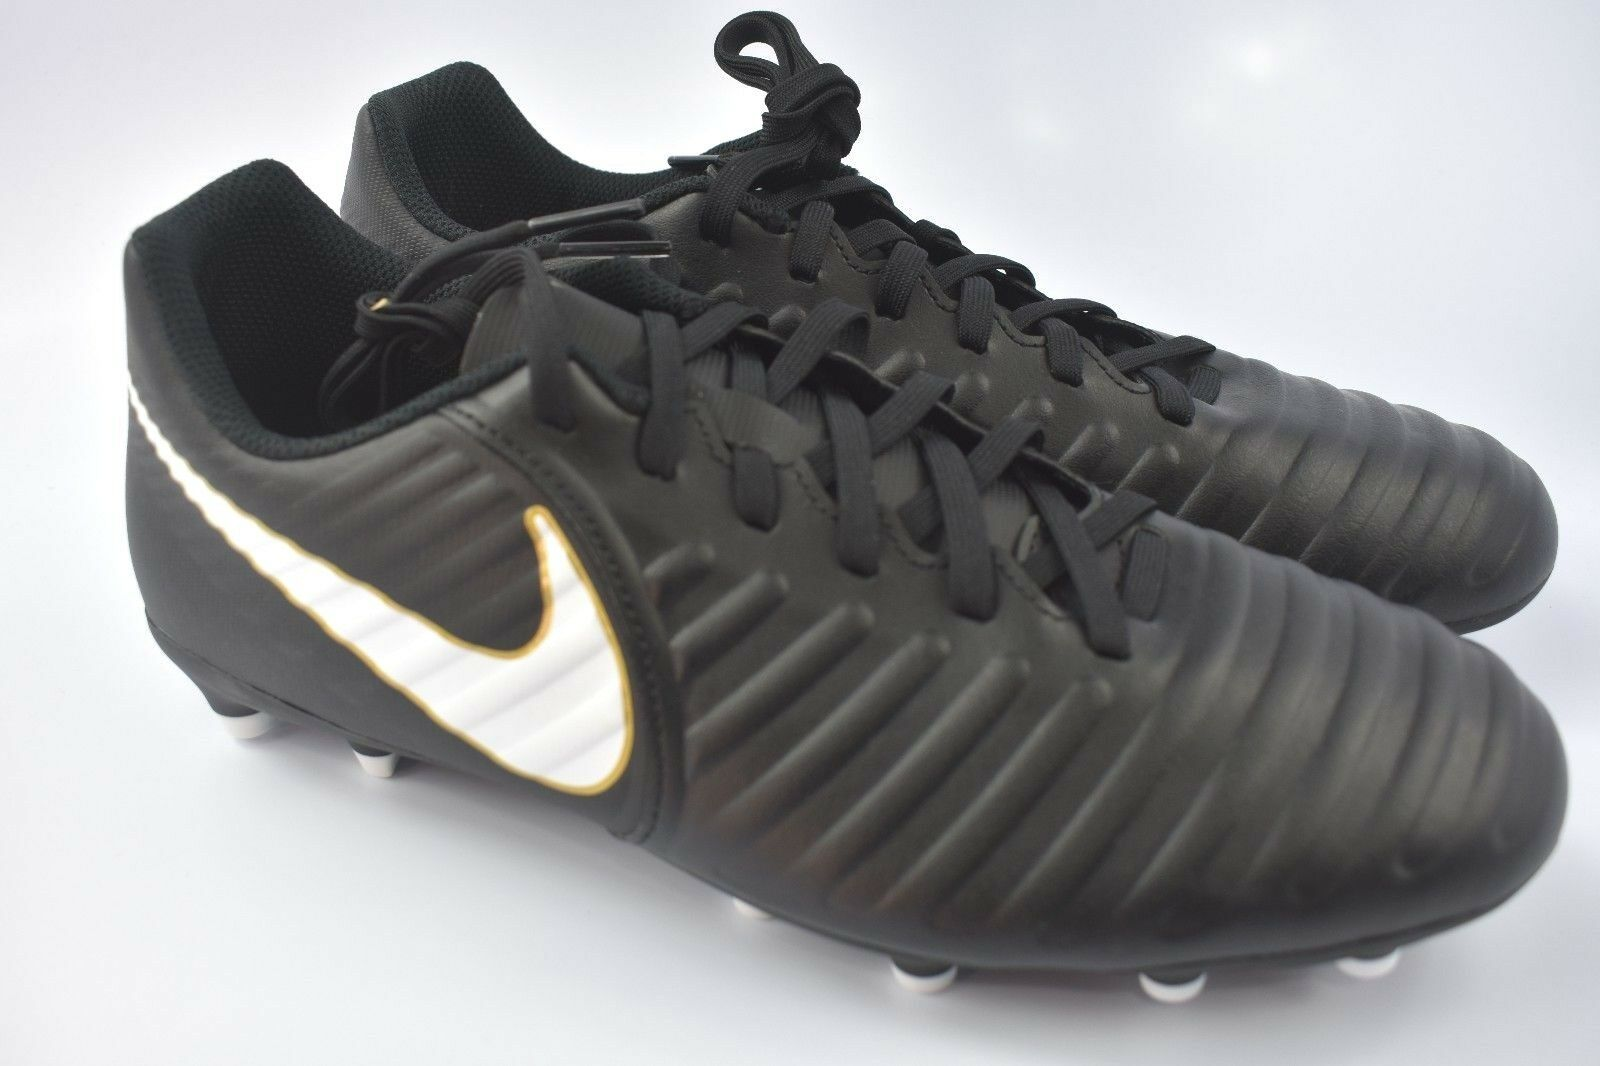 Nike Tiempo RIO IV FG Soccer Cleats Mens size 8 Black White 897759 002 Special limited time